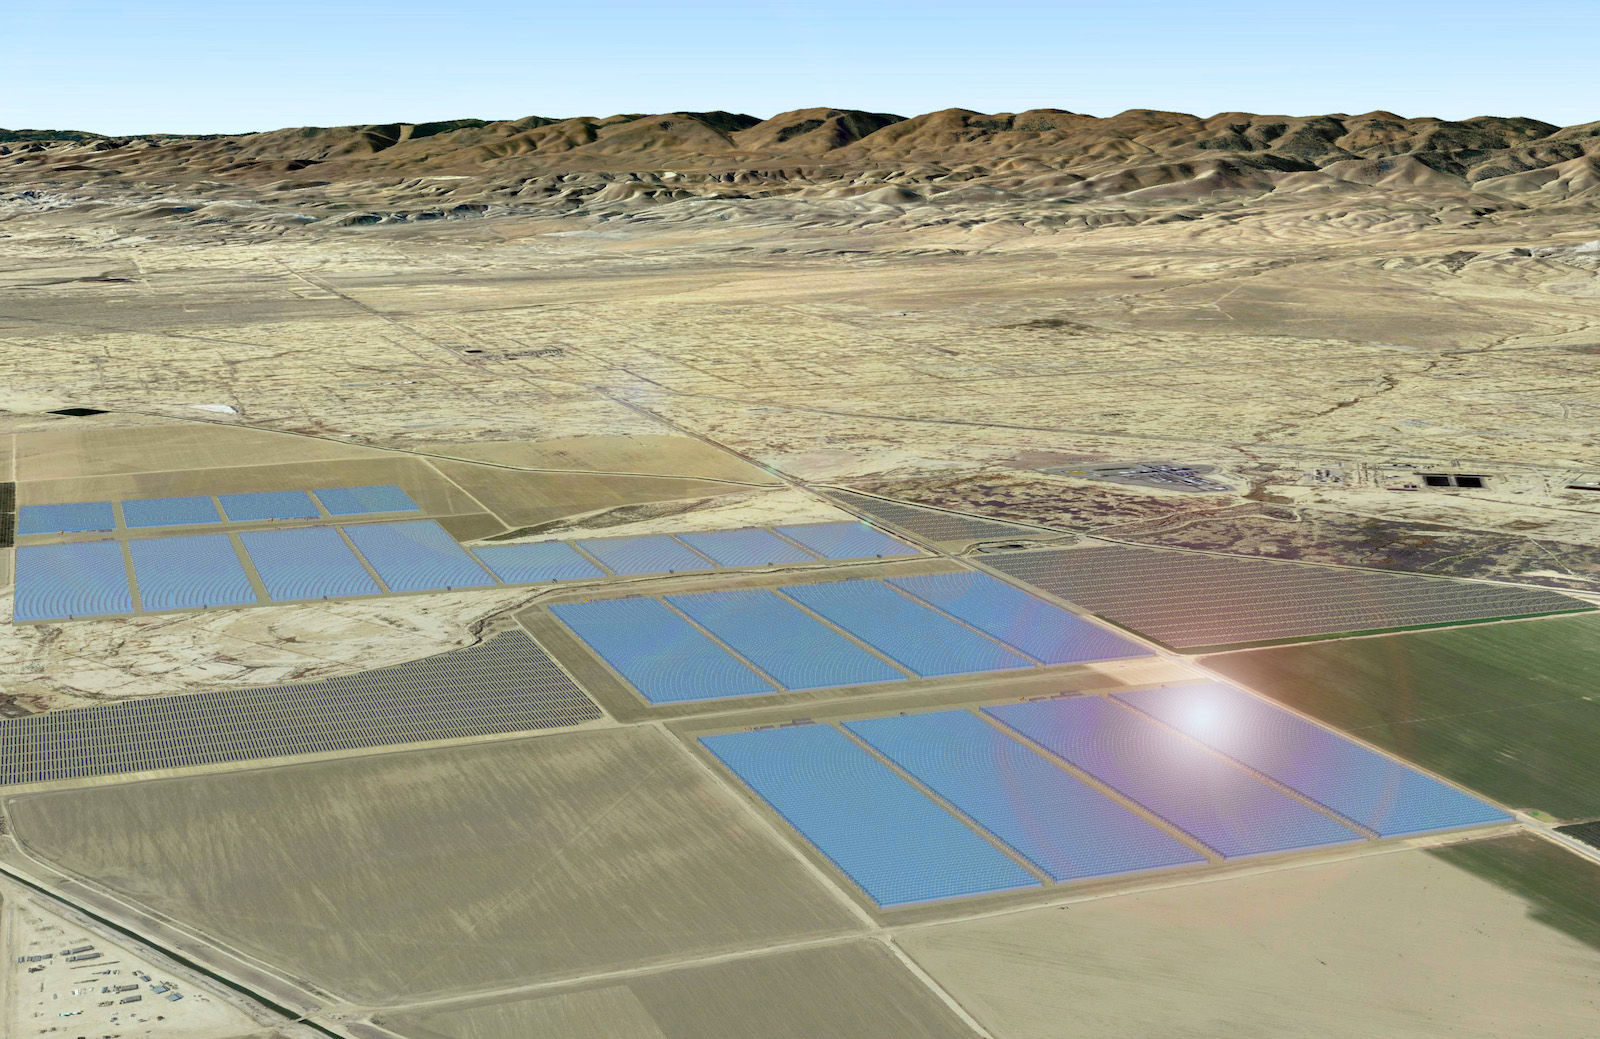 Glasspoint brings gigantic 850 mwth solar eor to california glasspoint will build an 850 mw thermal solar facility at the belridge oil field in bakersfield to replace natural gas which is traditionally used for dailygadgetfo Gallery